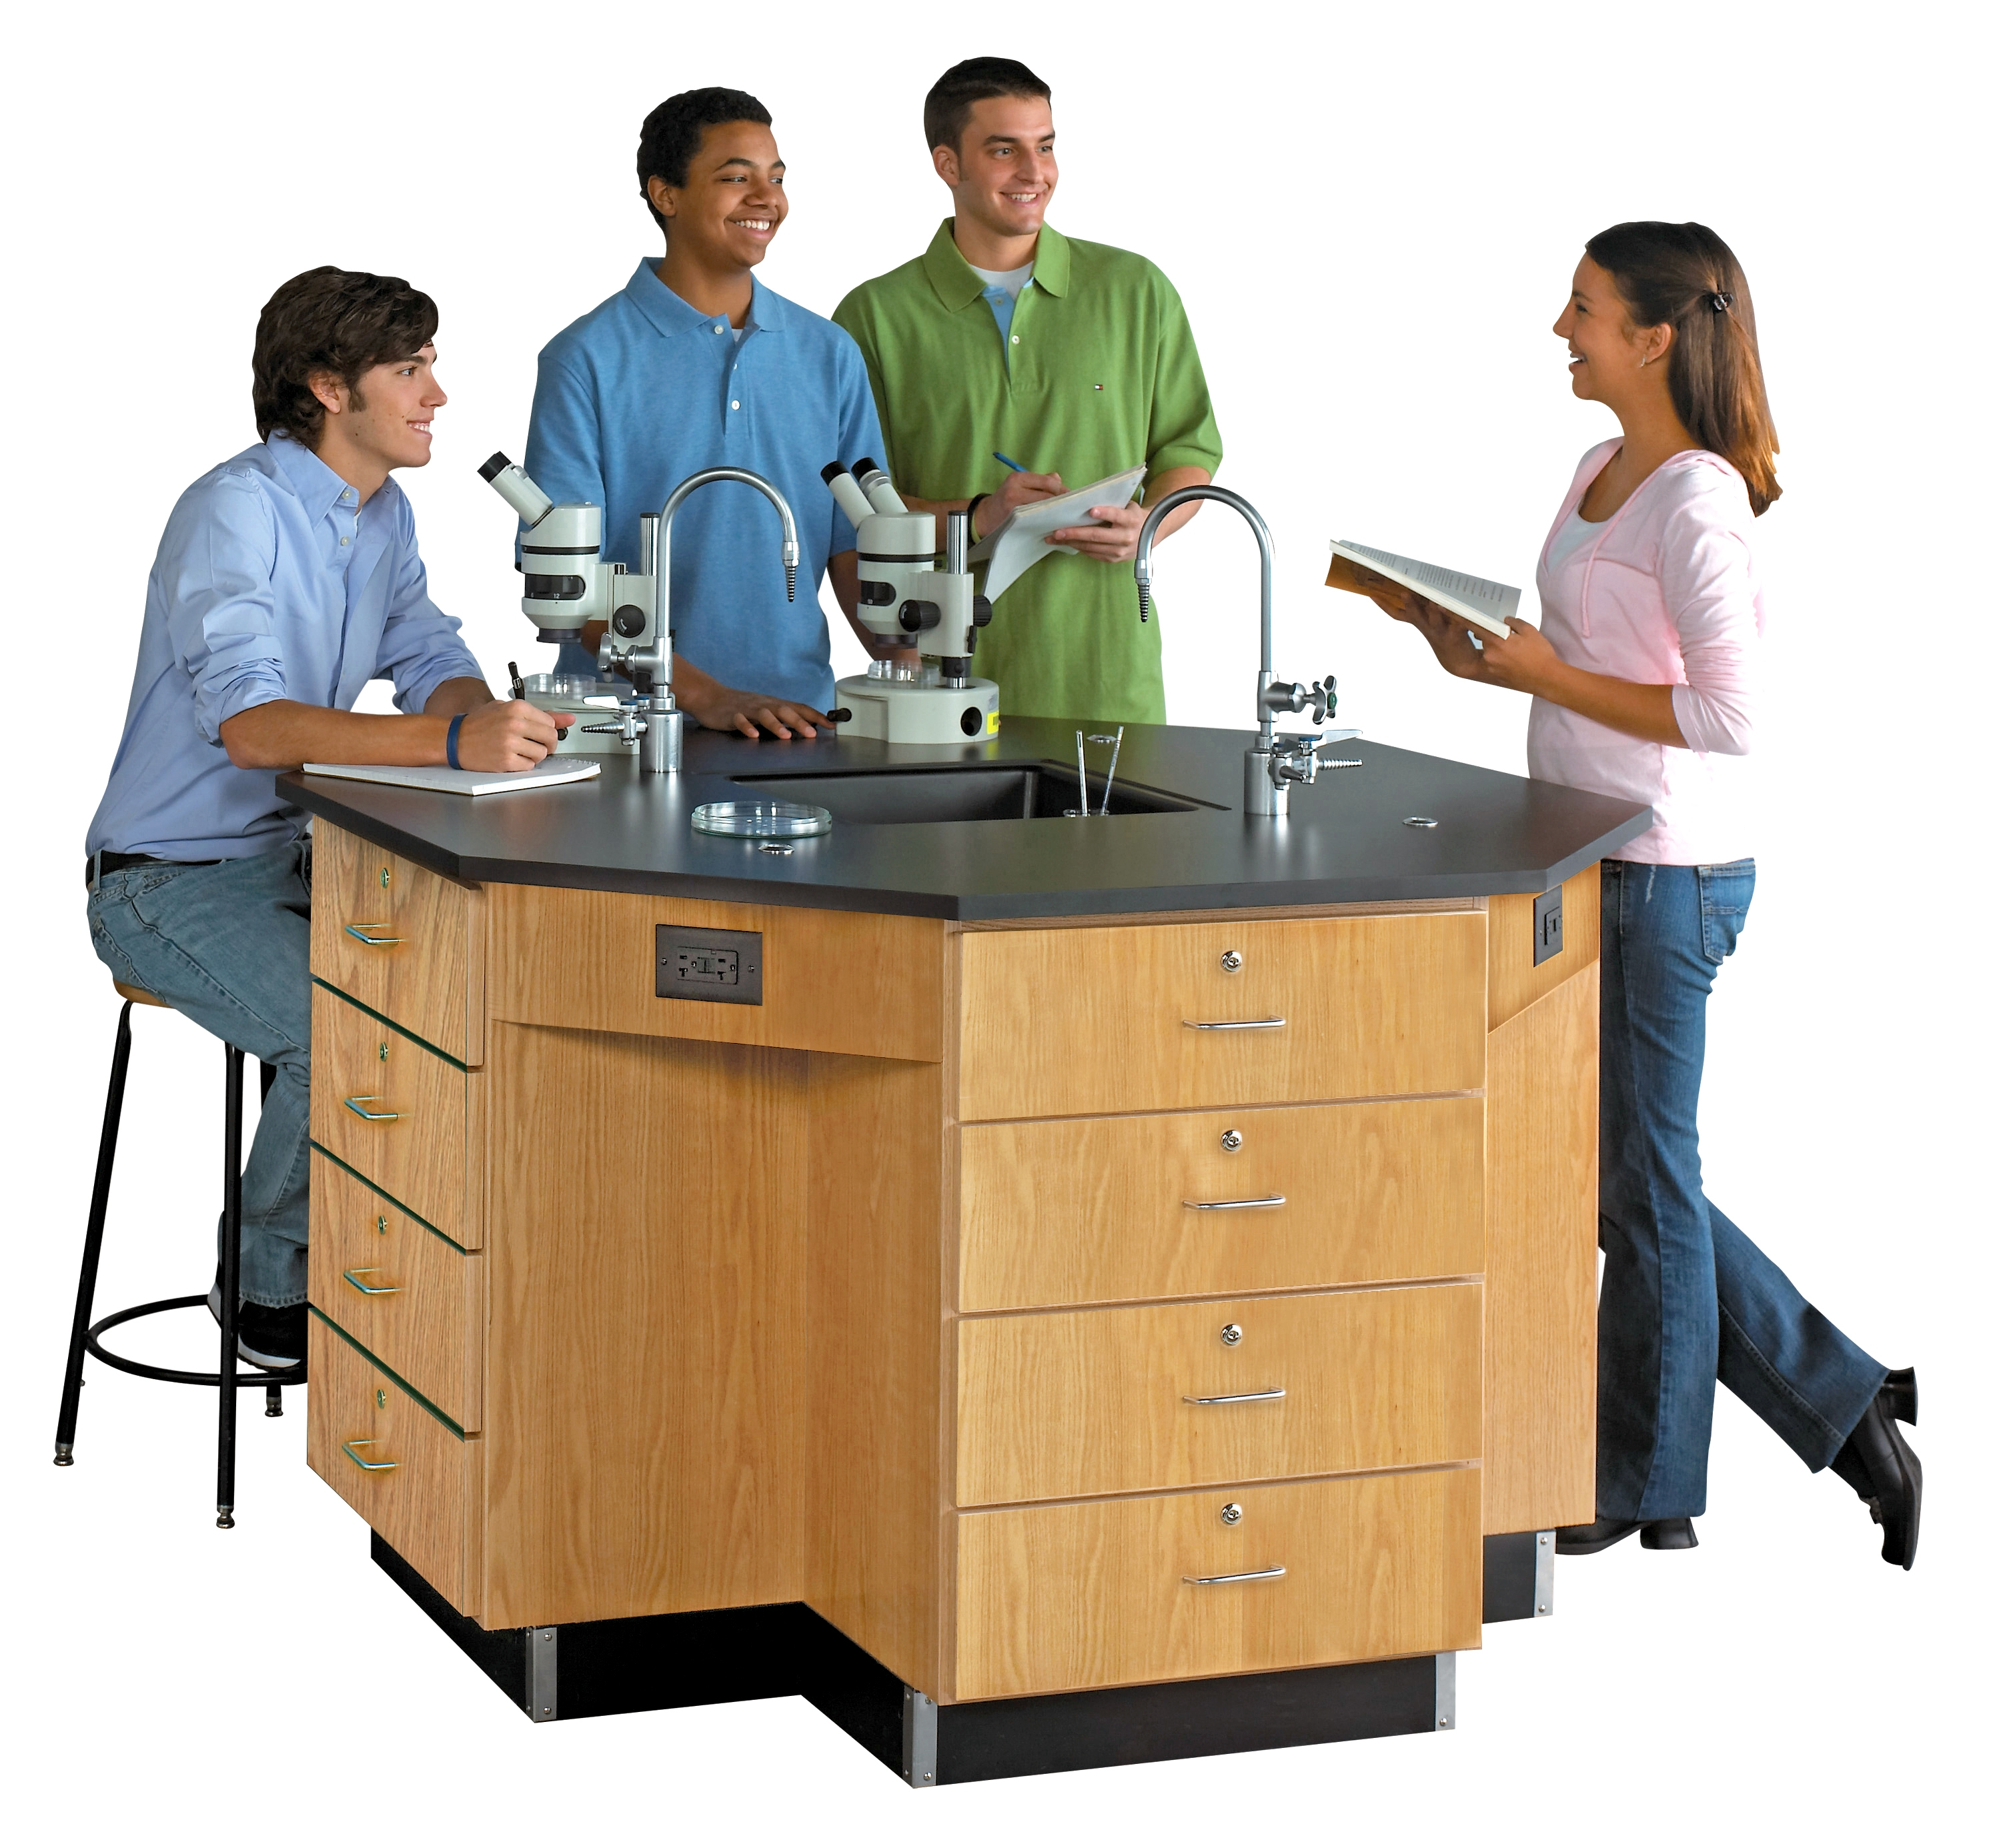 Diversified Woodcrafts Octagon Workstation with Drawer Base & Fixtures - Phenolic Top